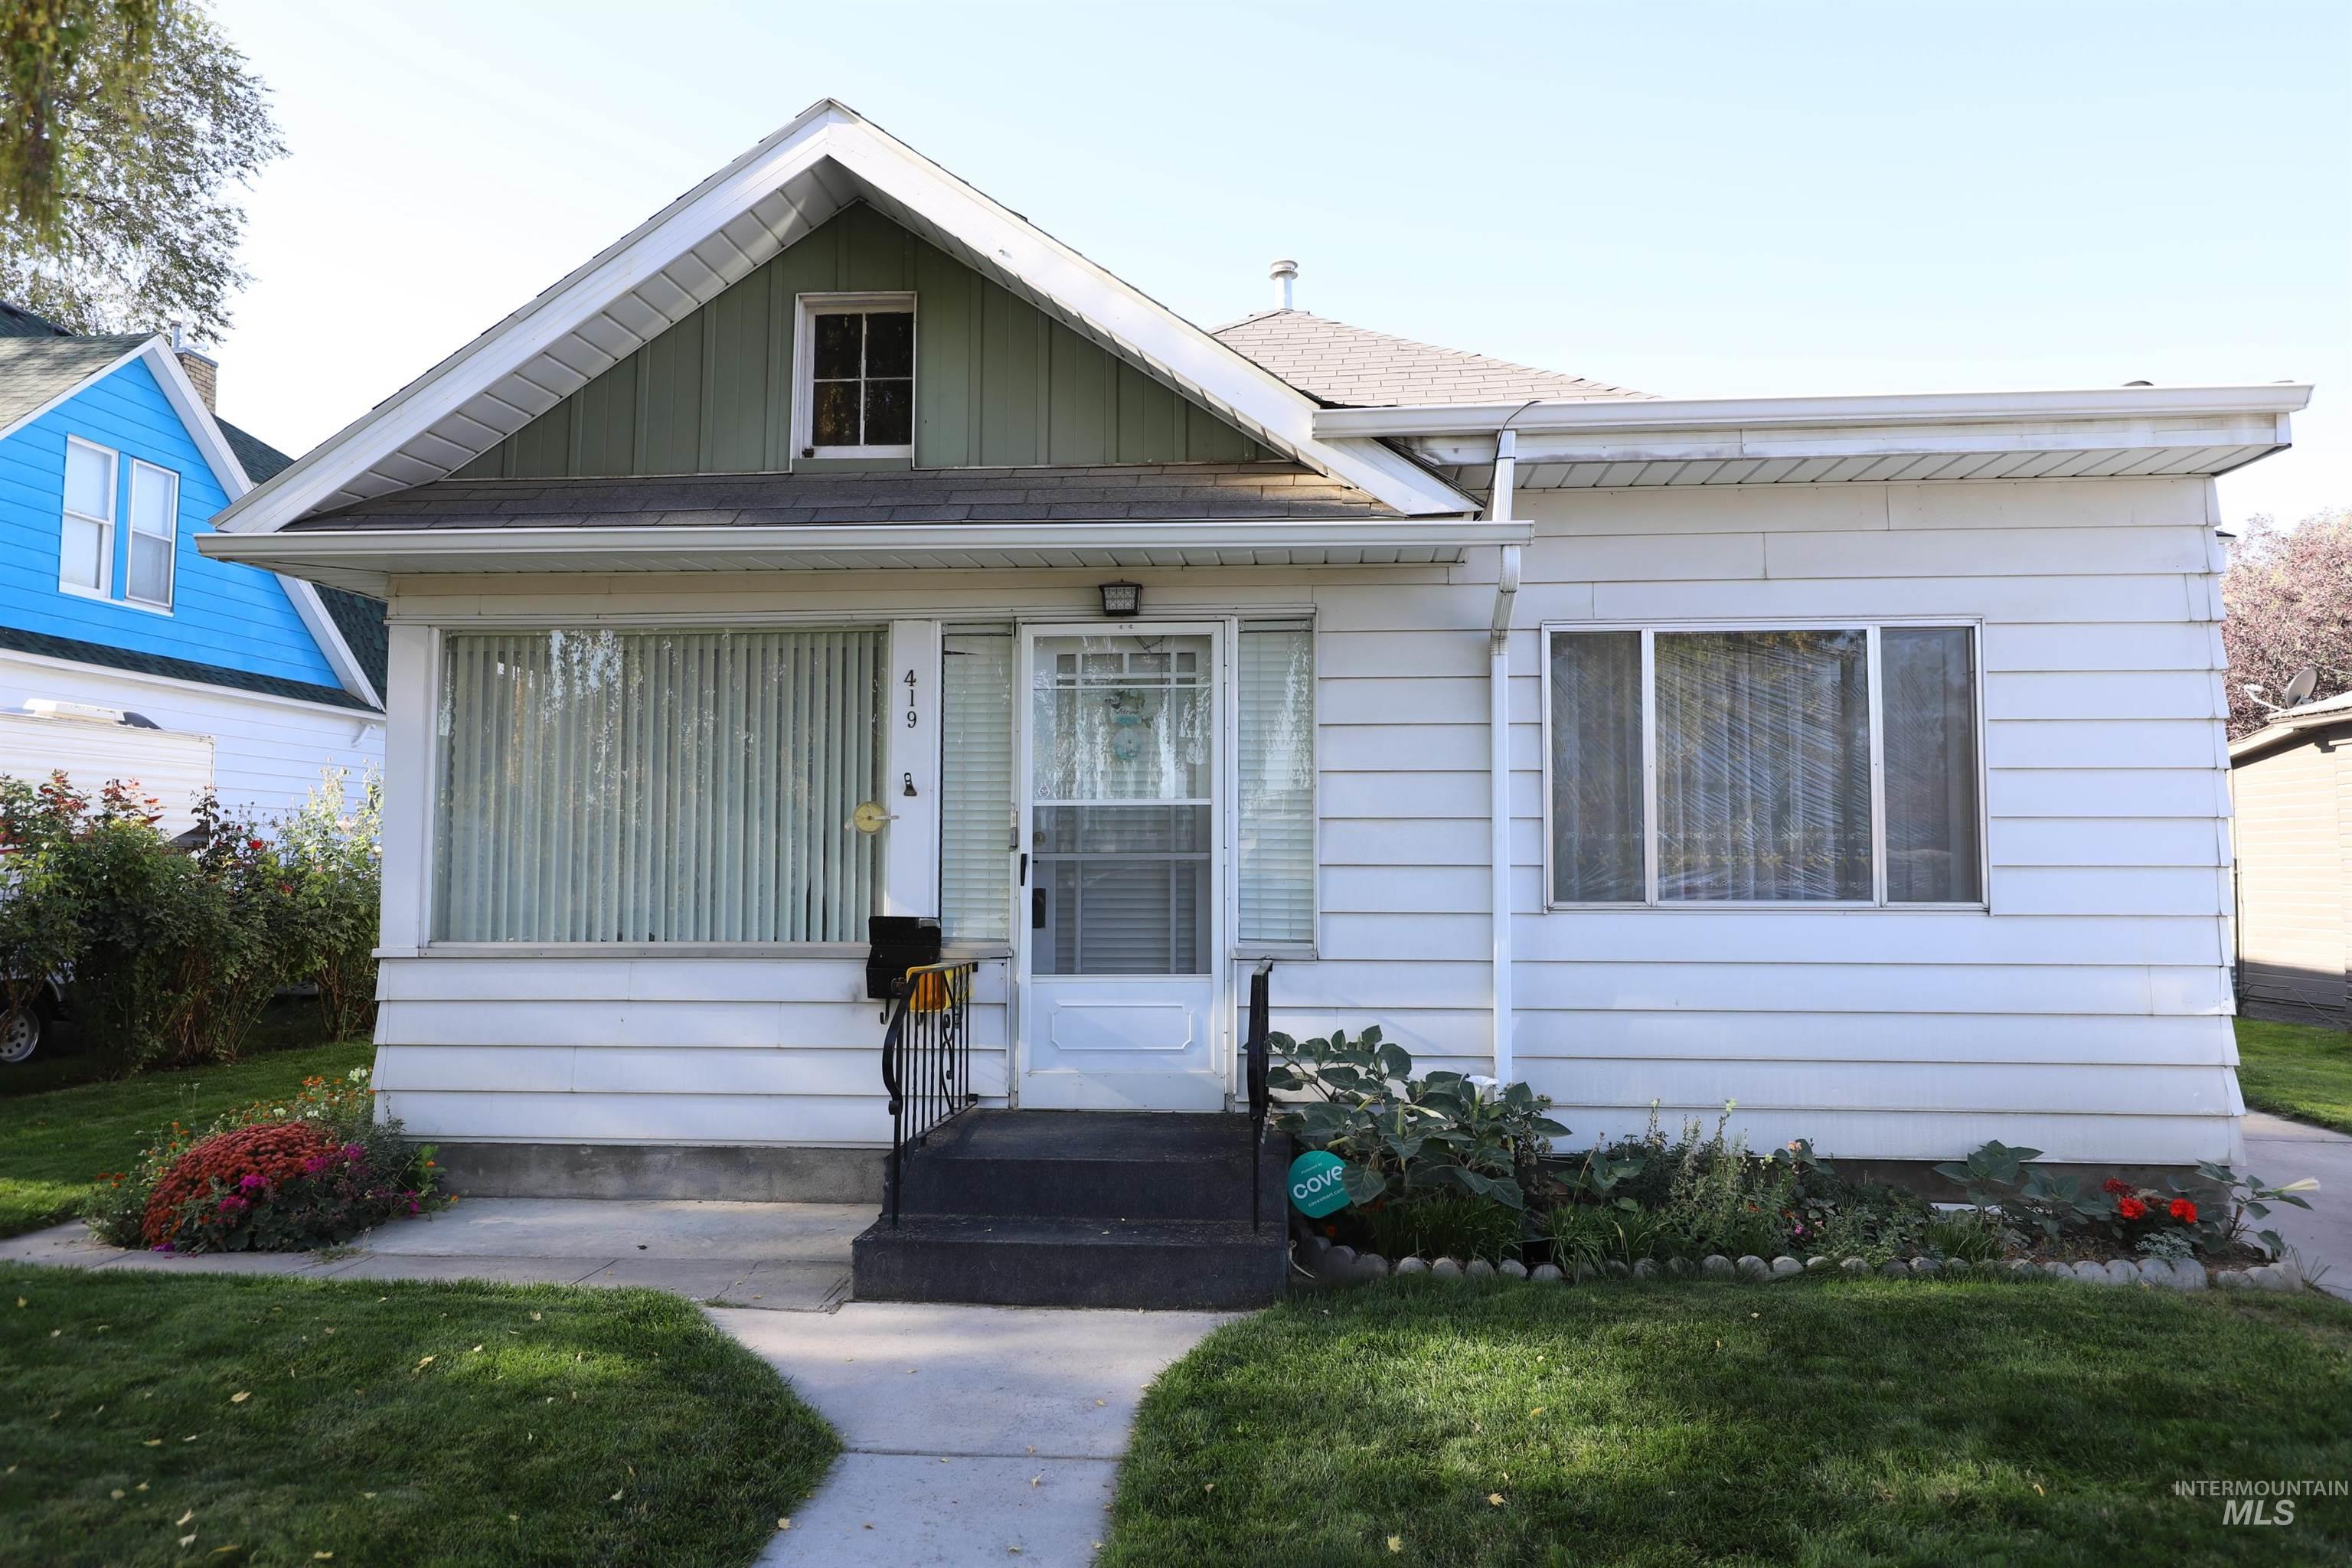 419 3rd Ave. W.